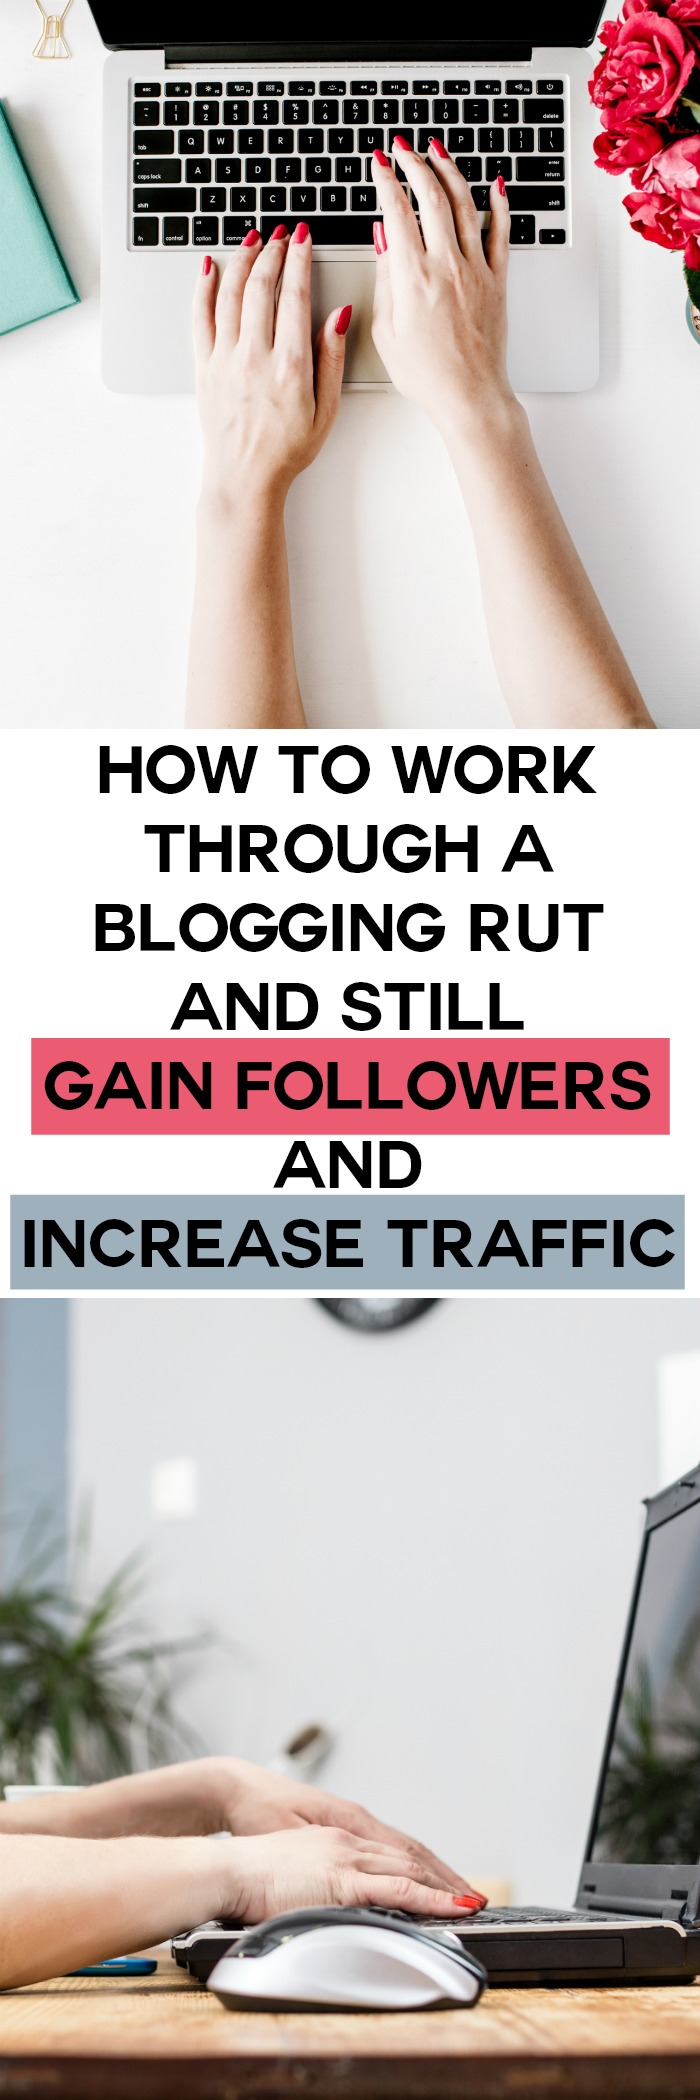 Tips For Working Through a Blogging Rut and Still Gain Followers and Increase Traffic